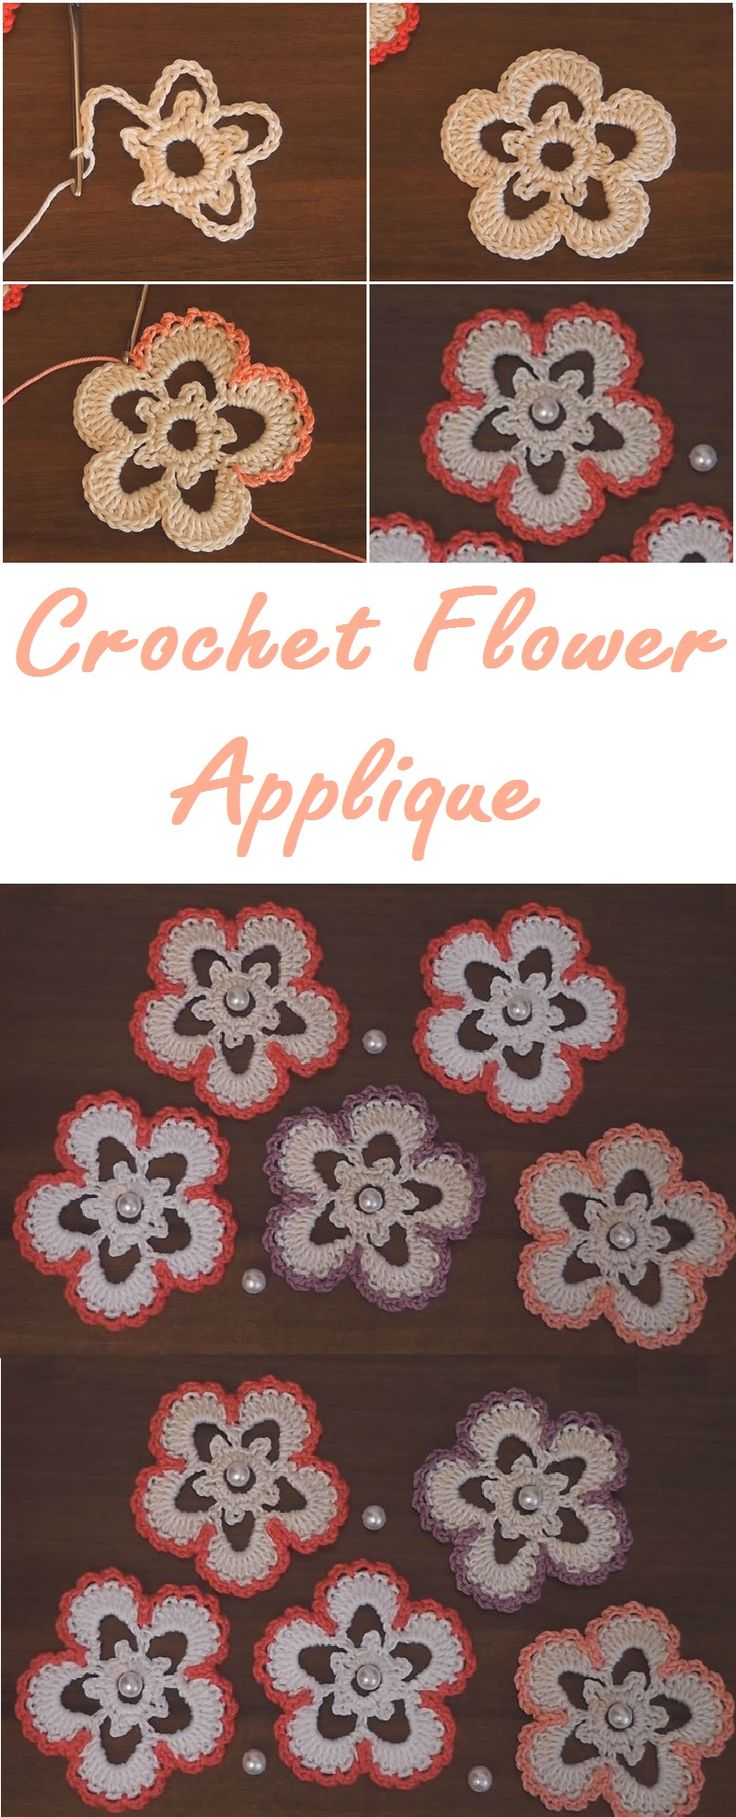 Crochet Flower Applique Free Pattern and Video Tutorial